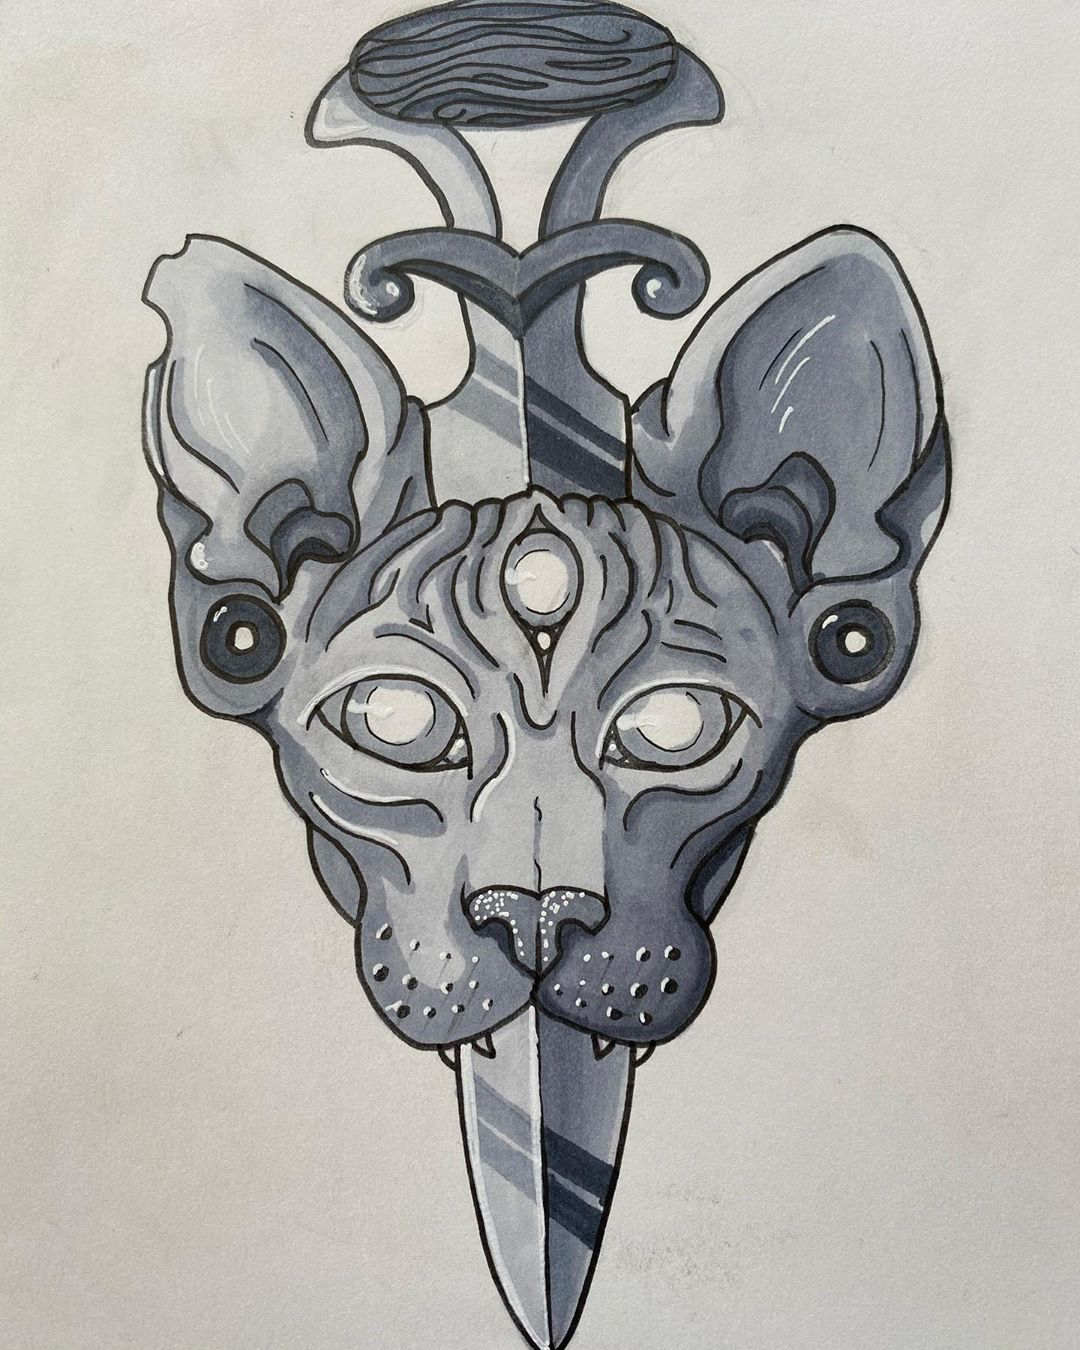 Awaken your third eye and bring some magic into your life. Cats are definitely magical and a three eyed cat 3 times the magic! . . . #art #artist# #artwork #pen #markers #artmaker #maker #handdrawn #tattoo #tattoodesign #illustration #blackandwhite #blackandgrey #cat #sphynxcat #magic #magical